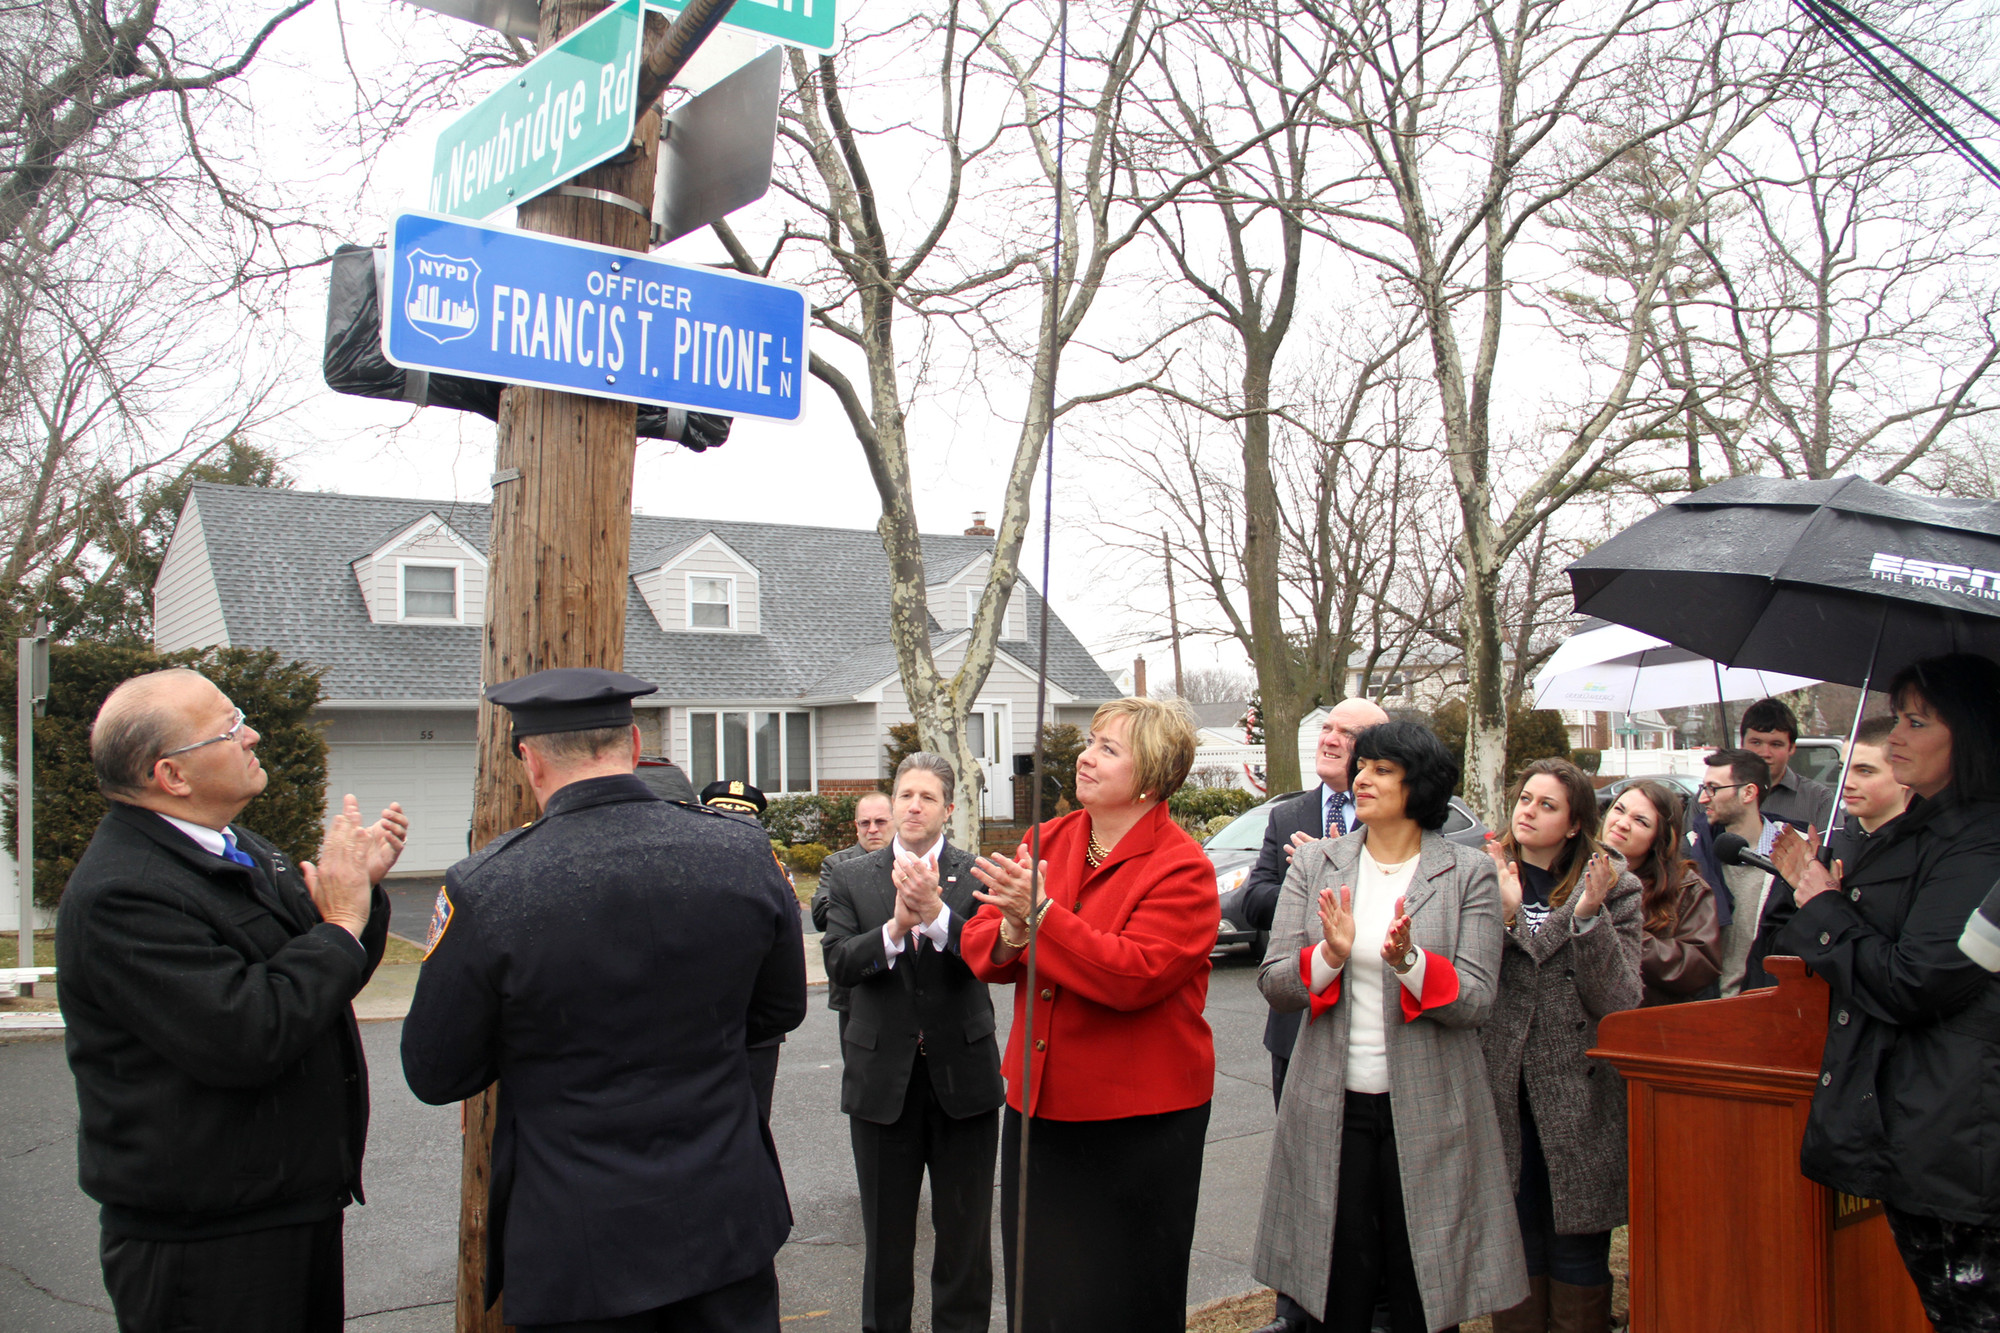 The unveiling of a street sign dedicated to Officer Francis T. Pitone, an NYPD officer and Sept. 11 first responder who died last August, was met with applause.